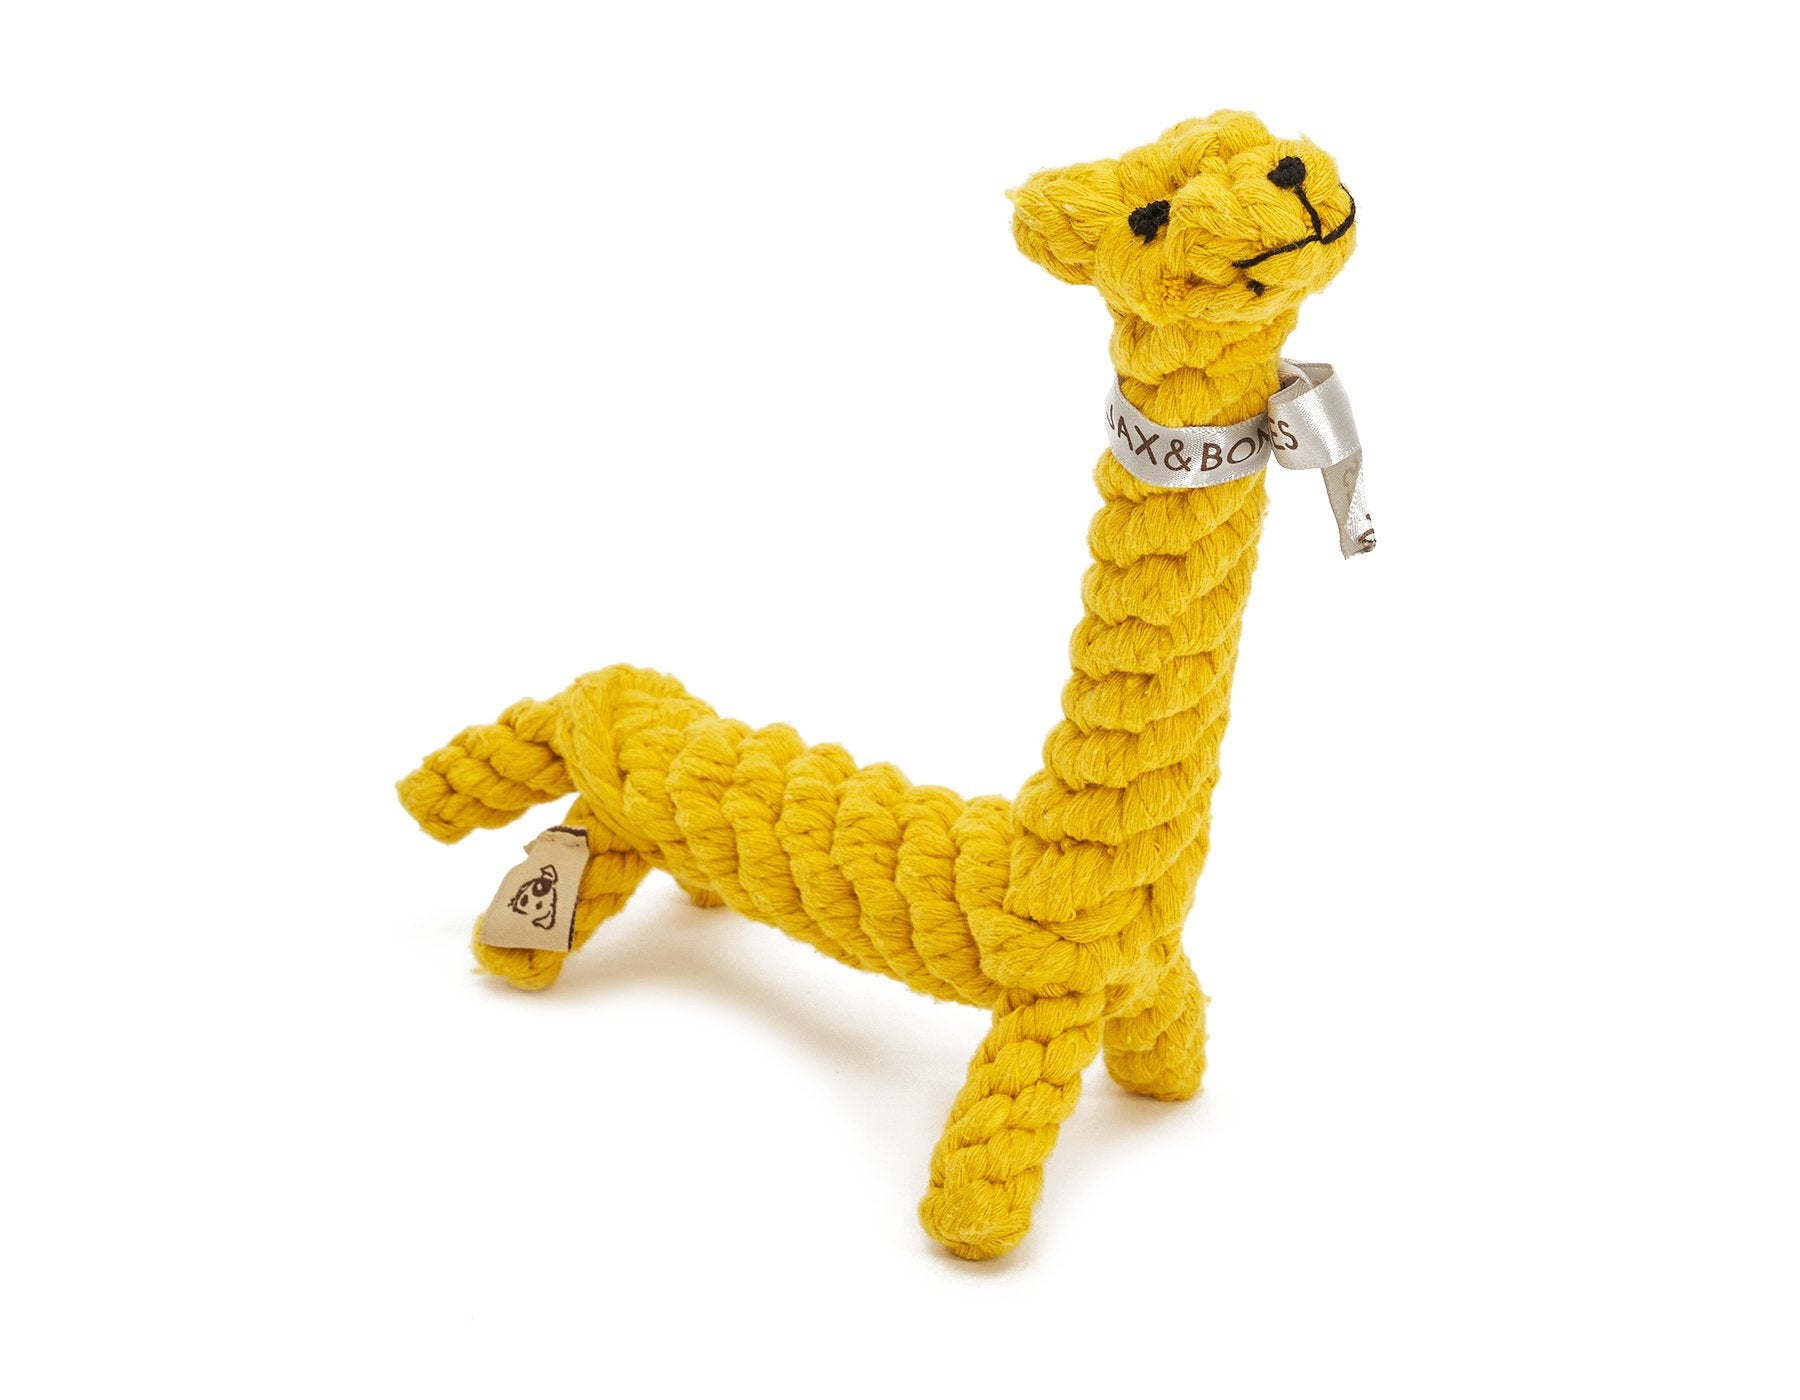 Jax & Bones Giraffe Dog Toy